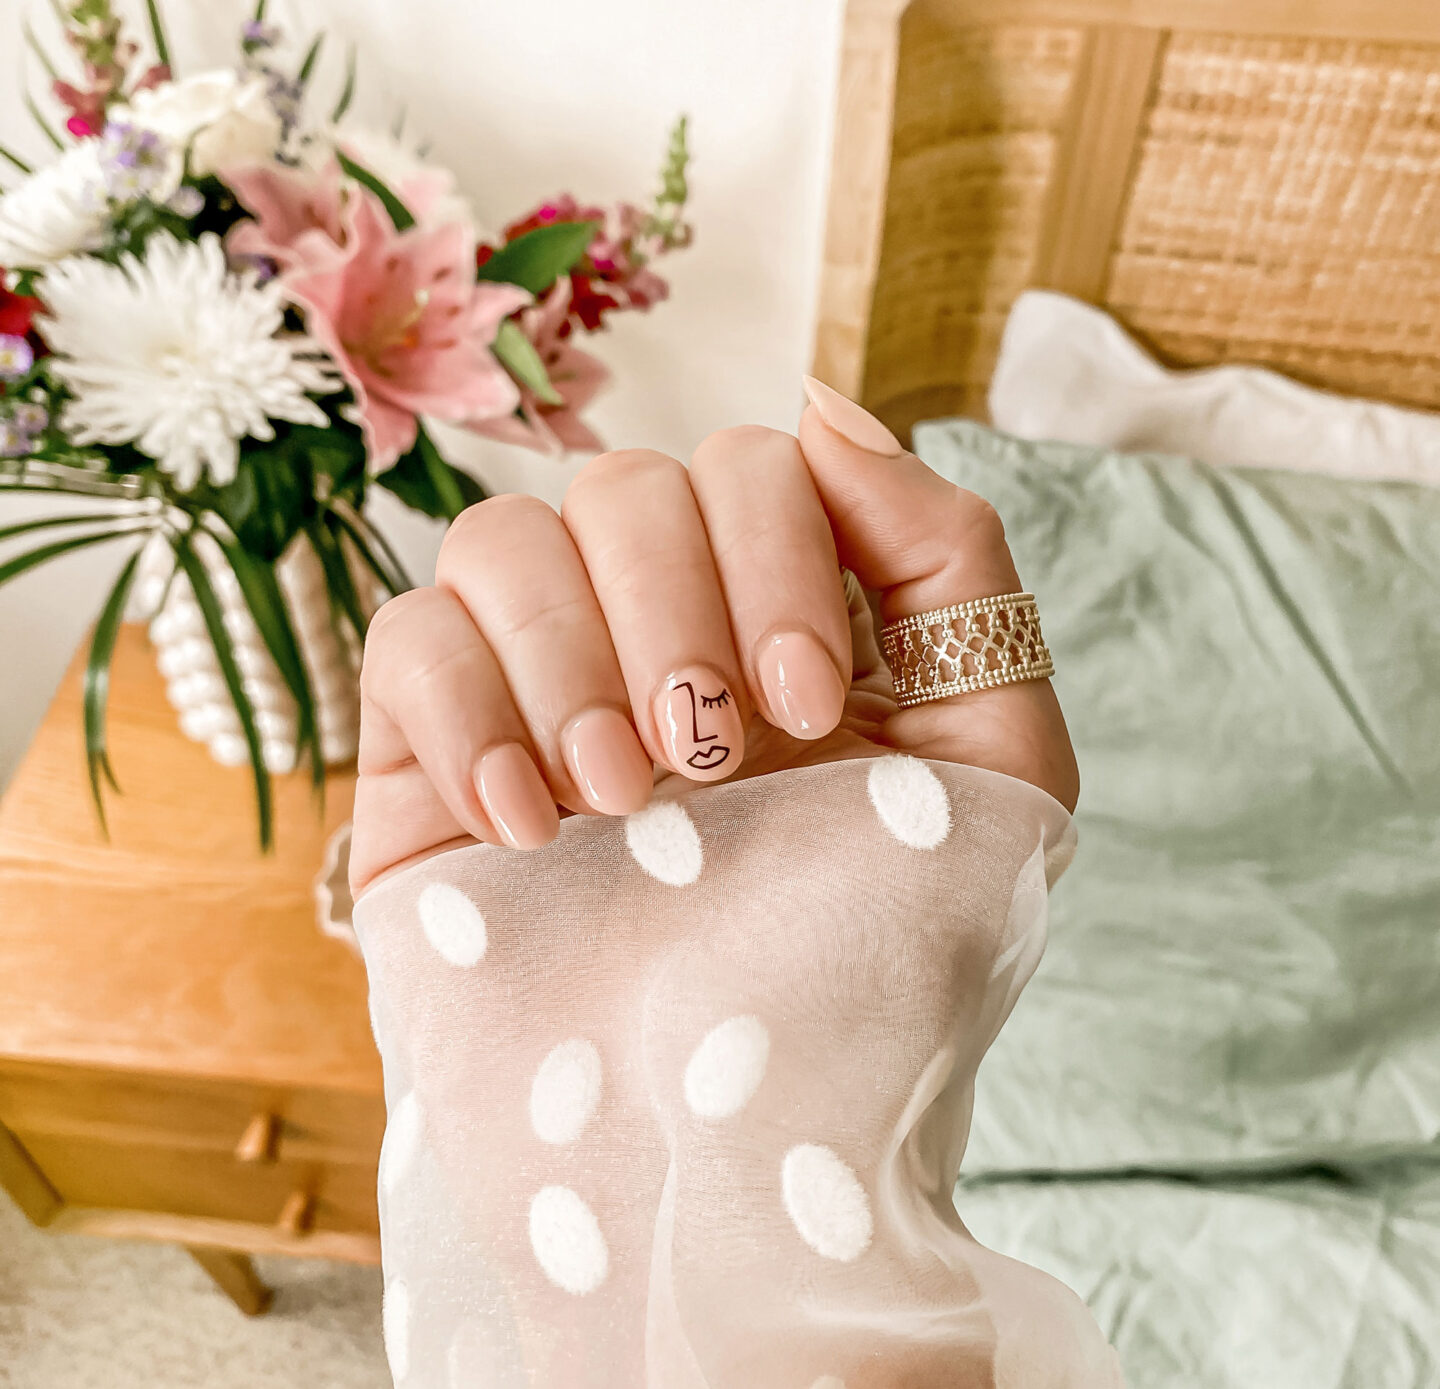 kelseyinlondon-kelsey-heinrichs-growing-nails-how-to-grow-your-nails-nail-art-ideas-nail-decals-diy-gel-manicure